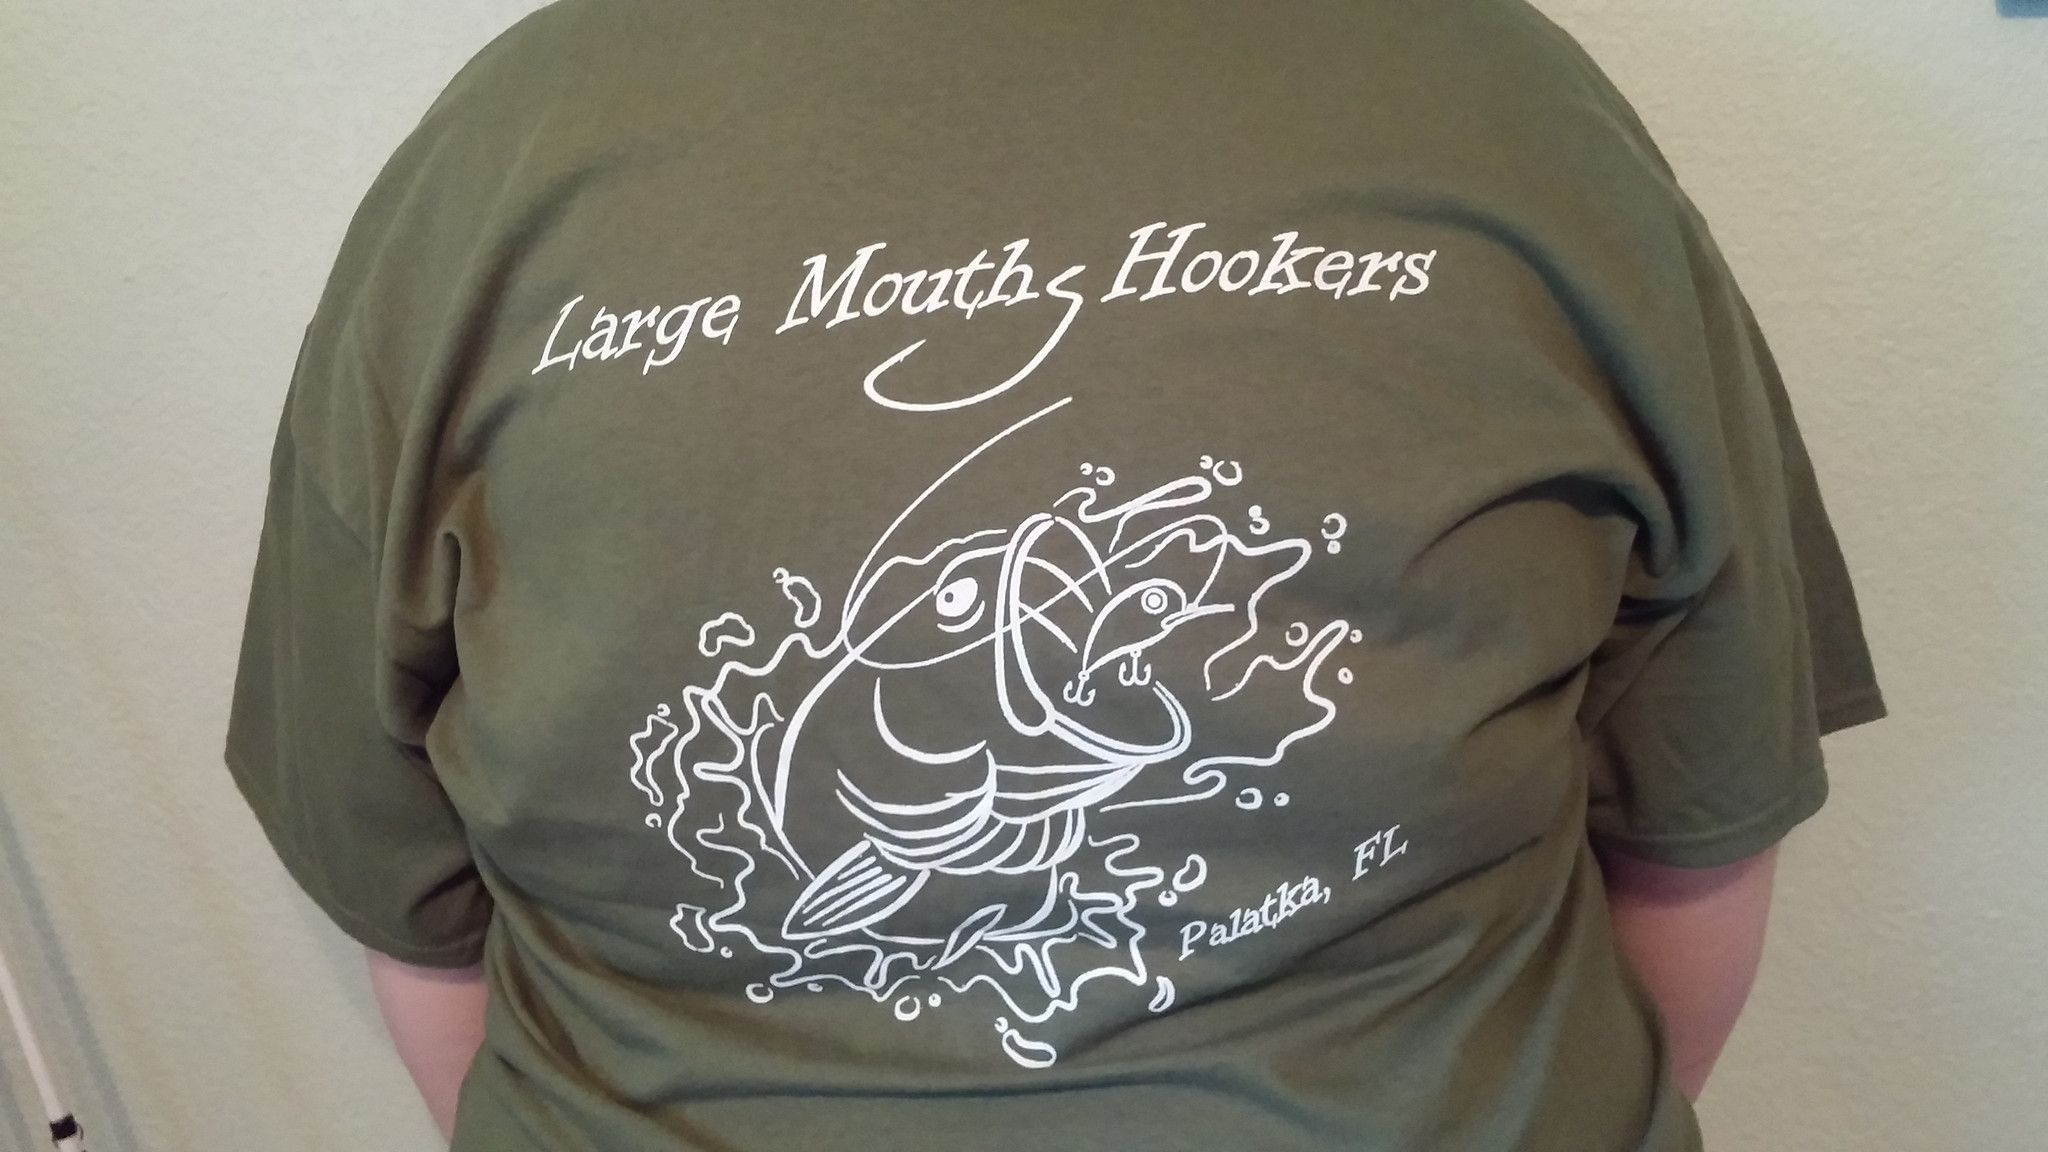 Large Mouth Hookers T-Shirts